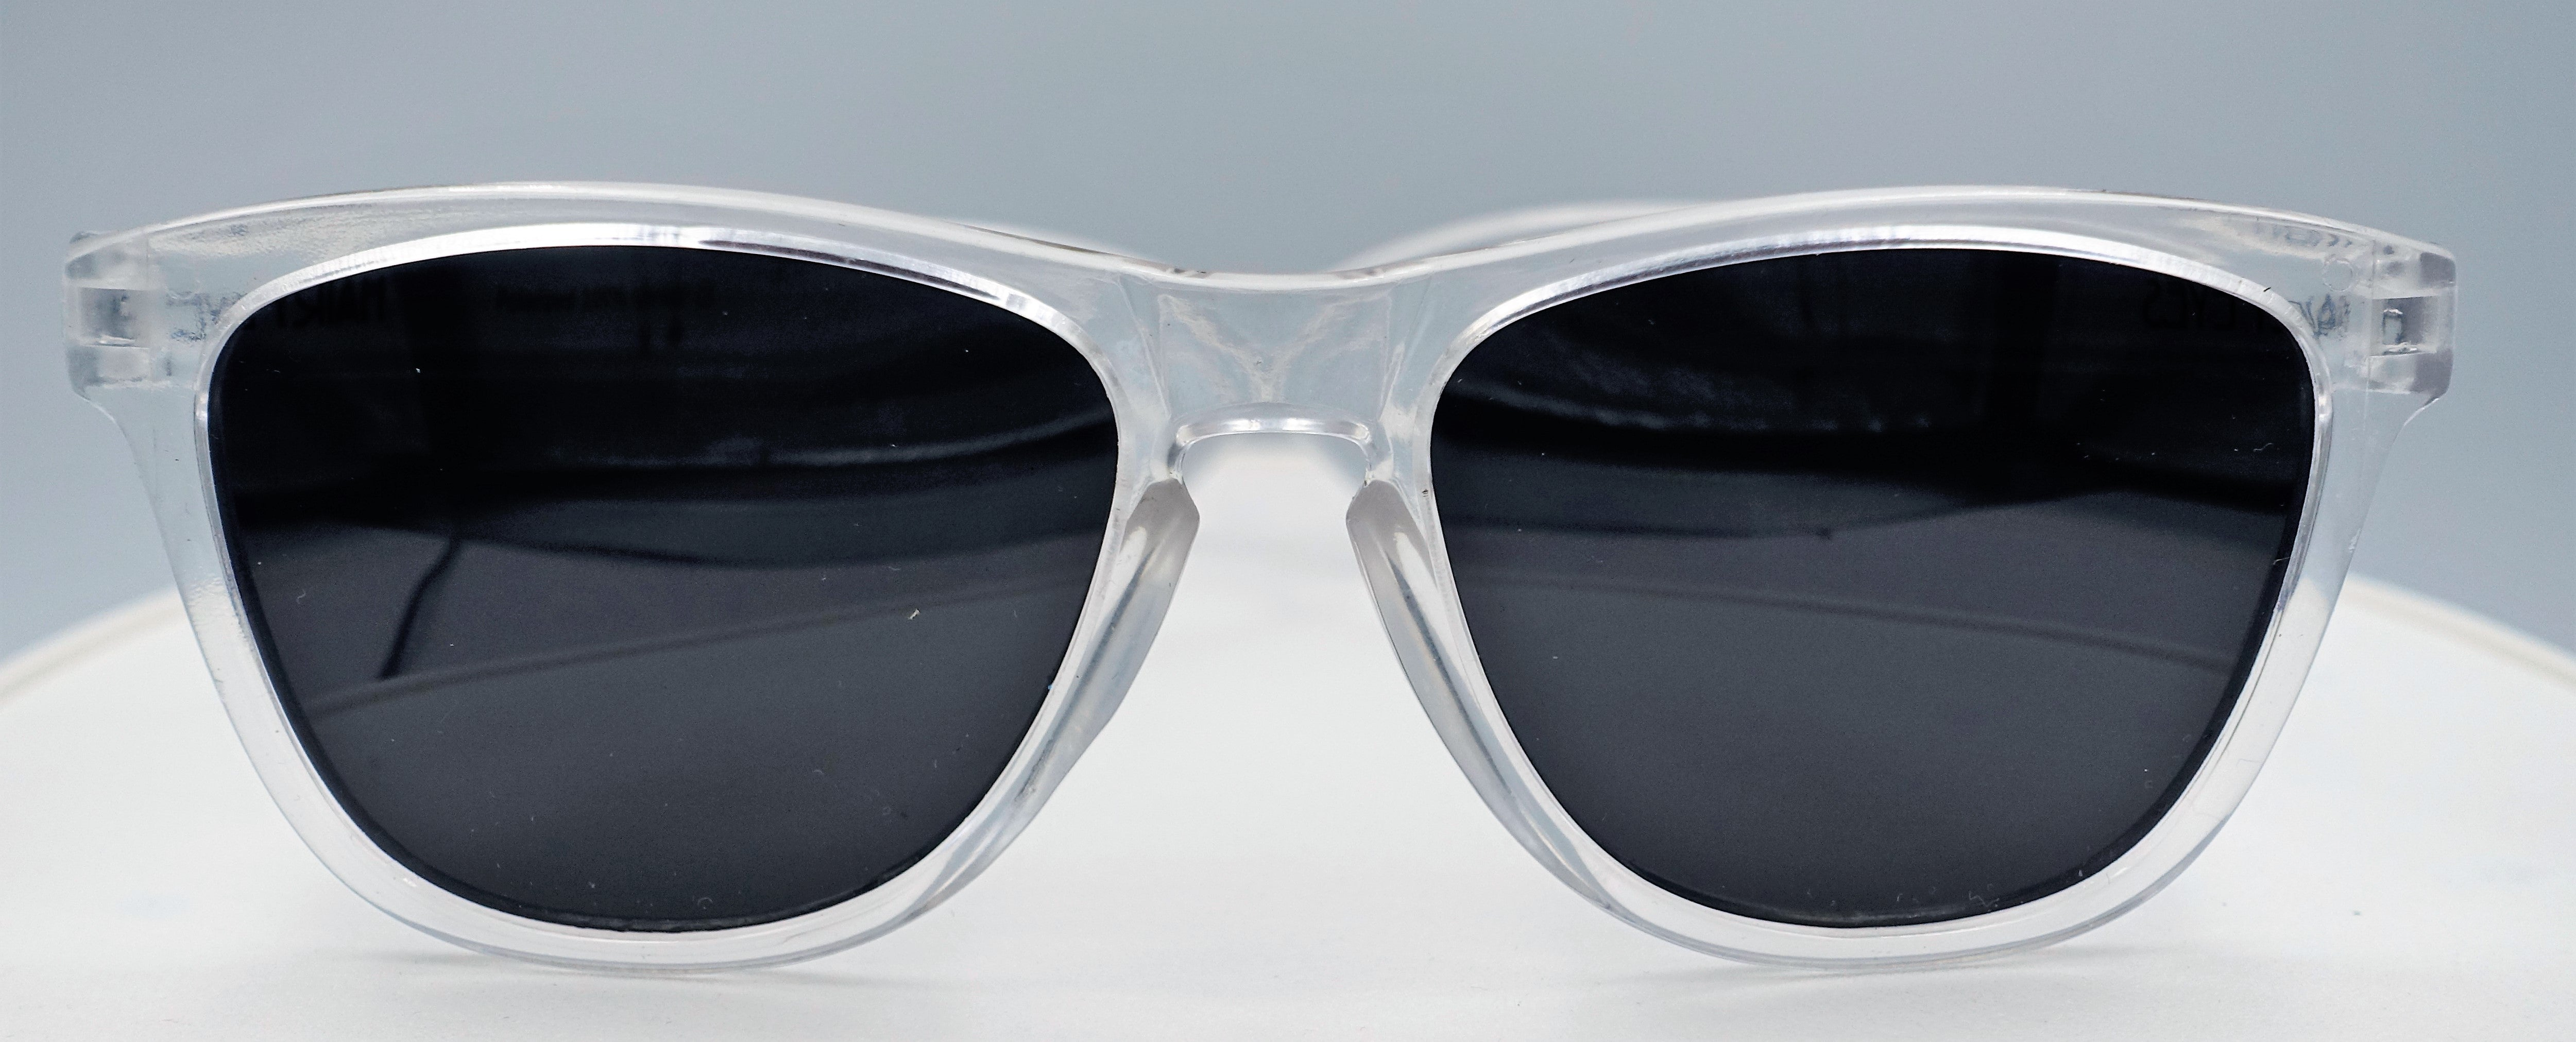 Hairyeyes polarised sunglasses UV400 sun protection from the harmful sun rays that cause skin cancer, see with style right price styles hairyeyes sunglasses